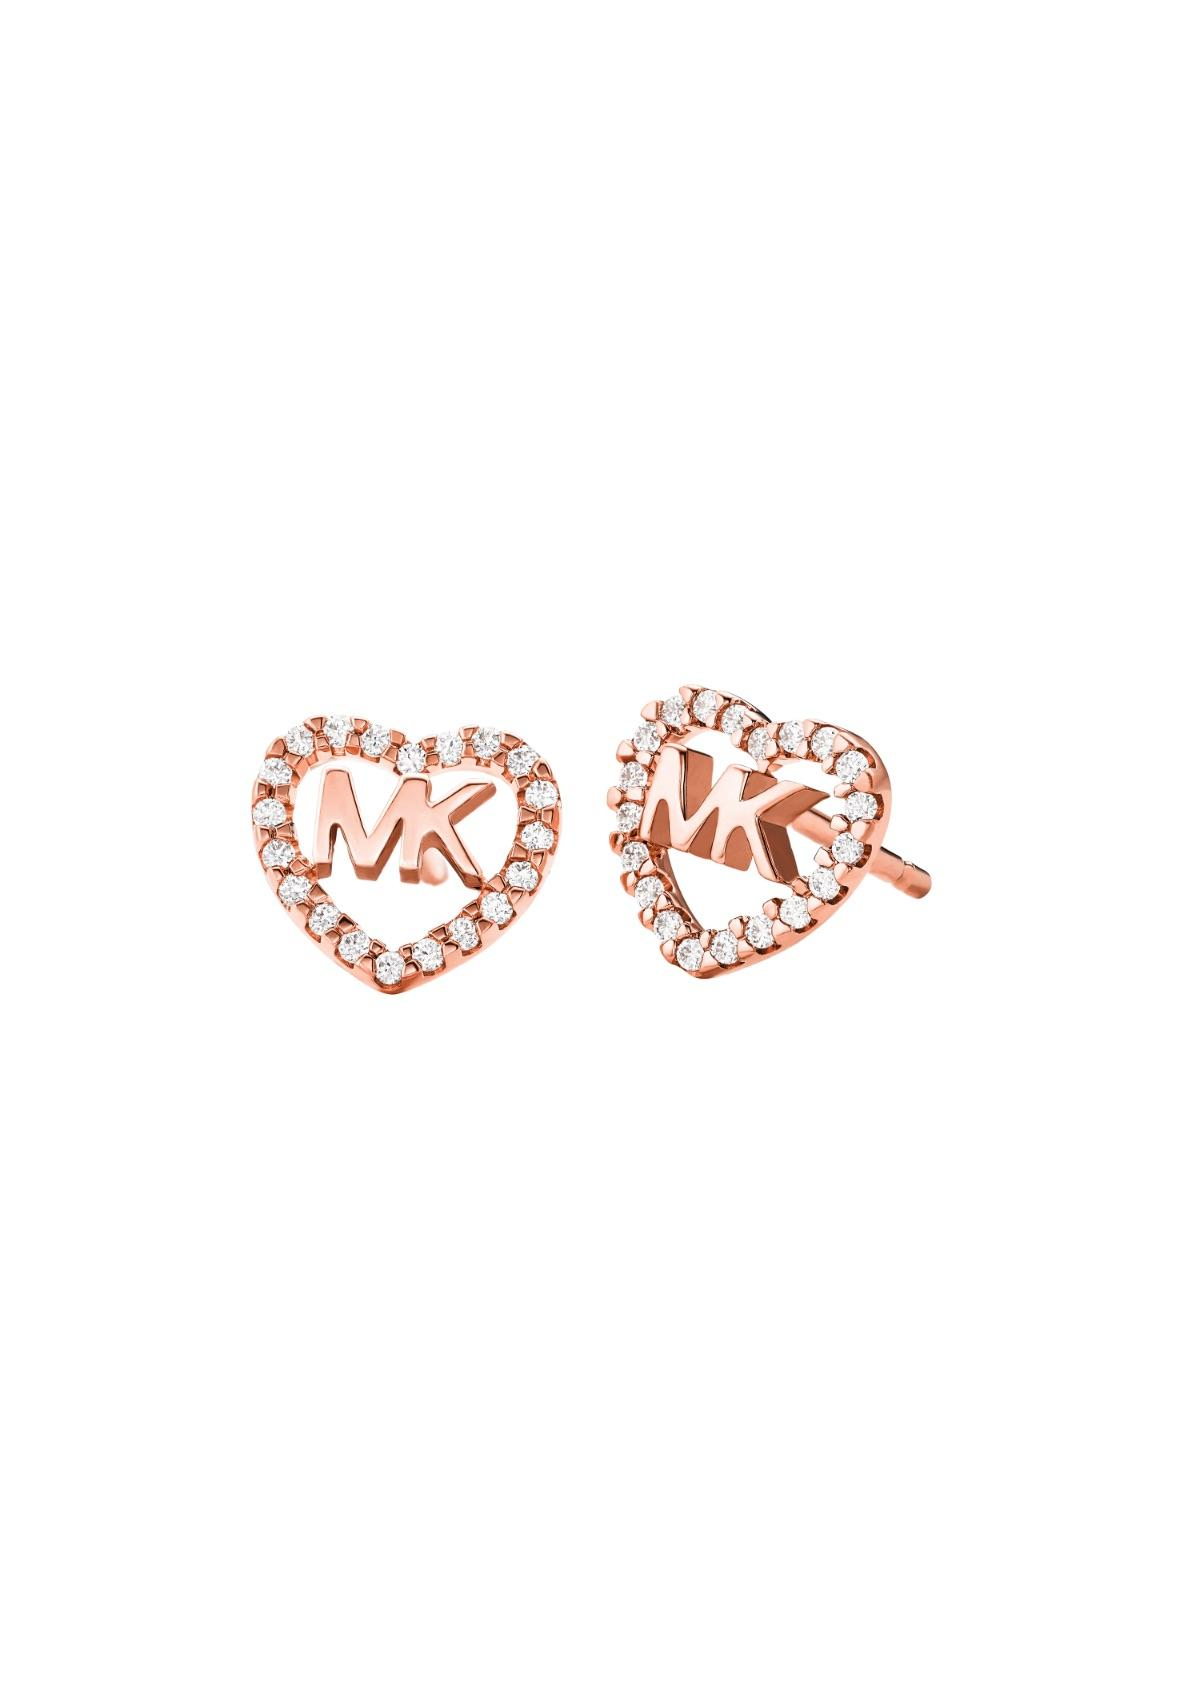 Rose Gold MK stud earrings